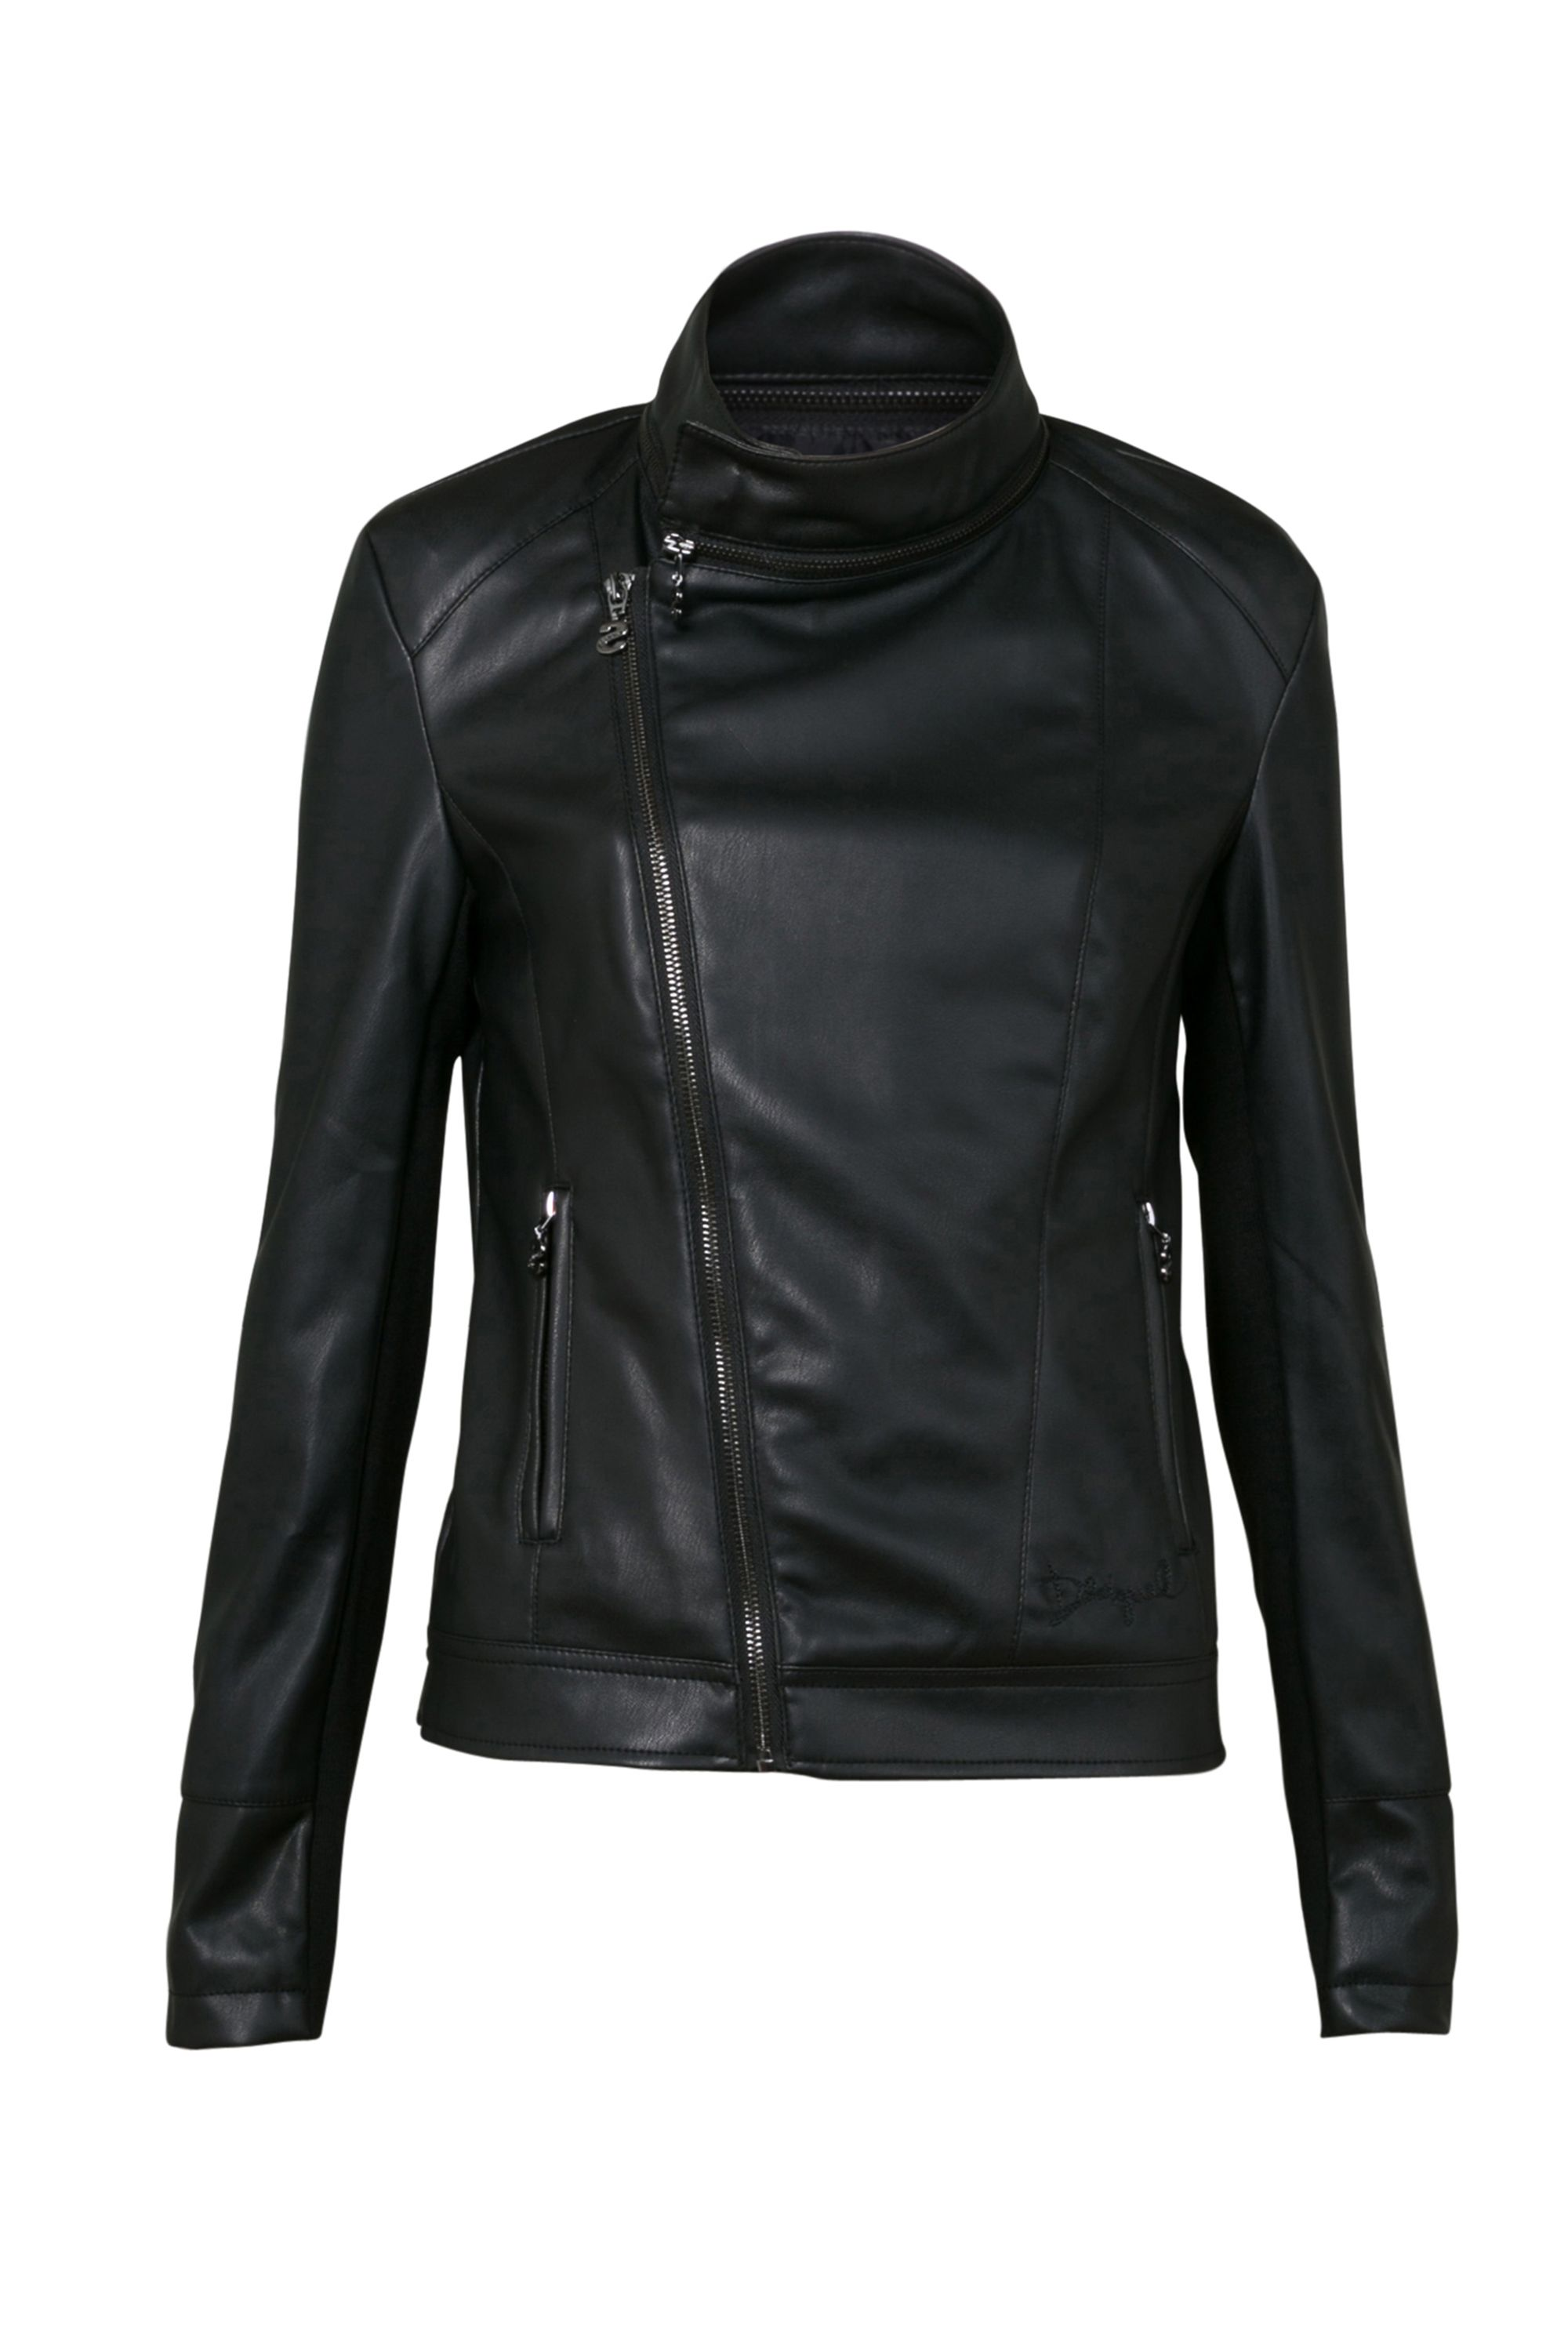 Desigual Jacket Leman, Black